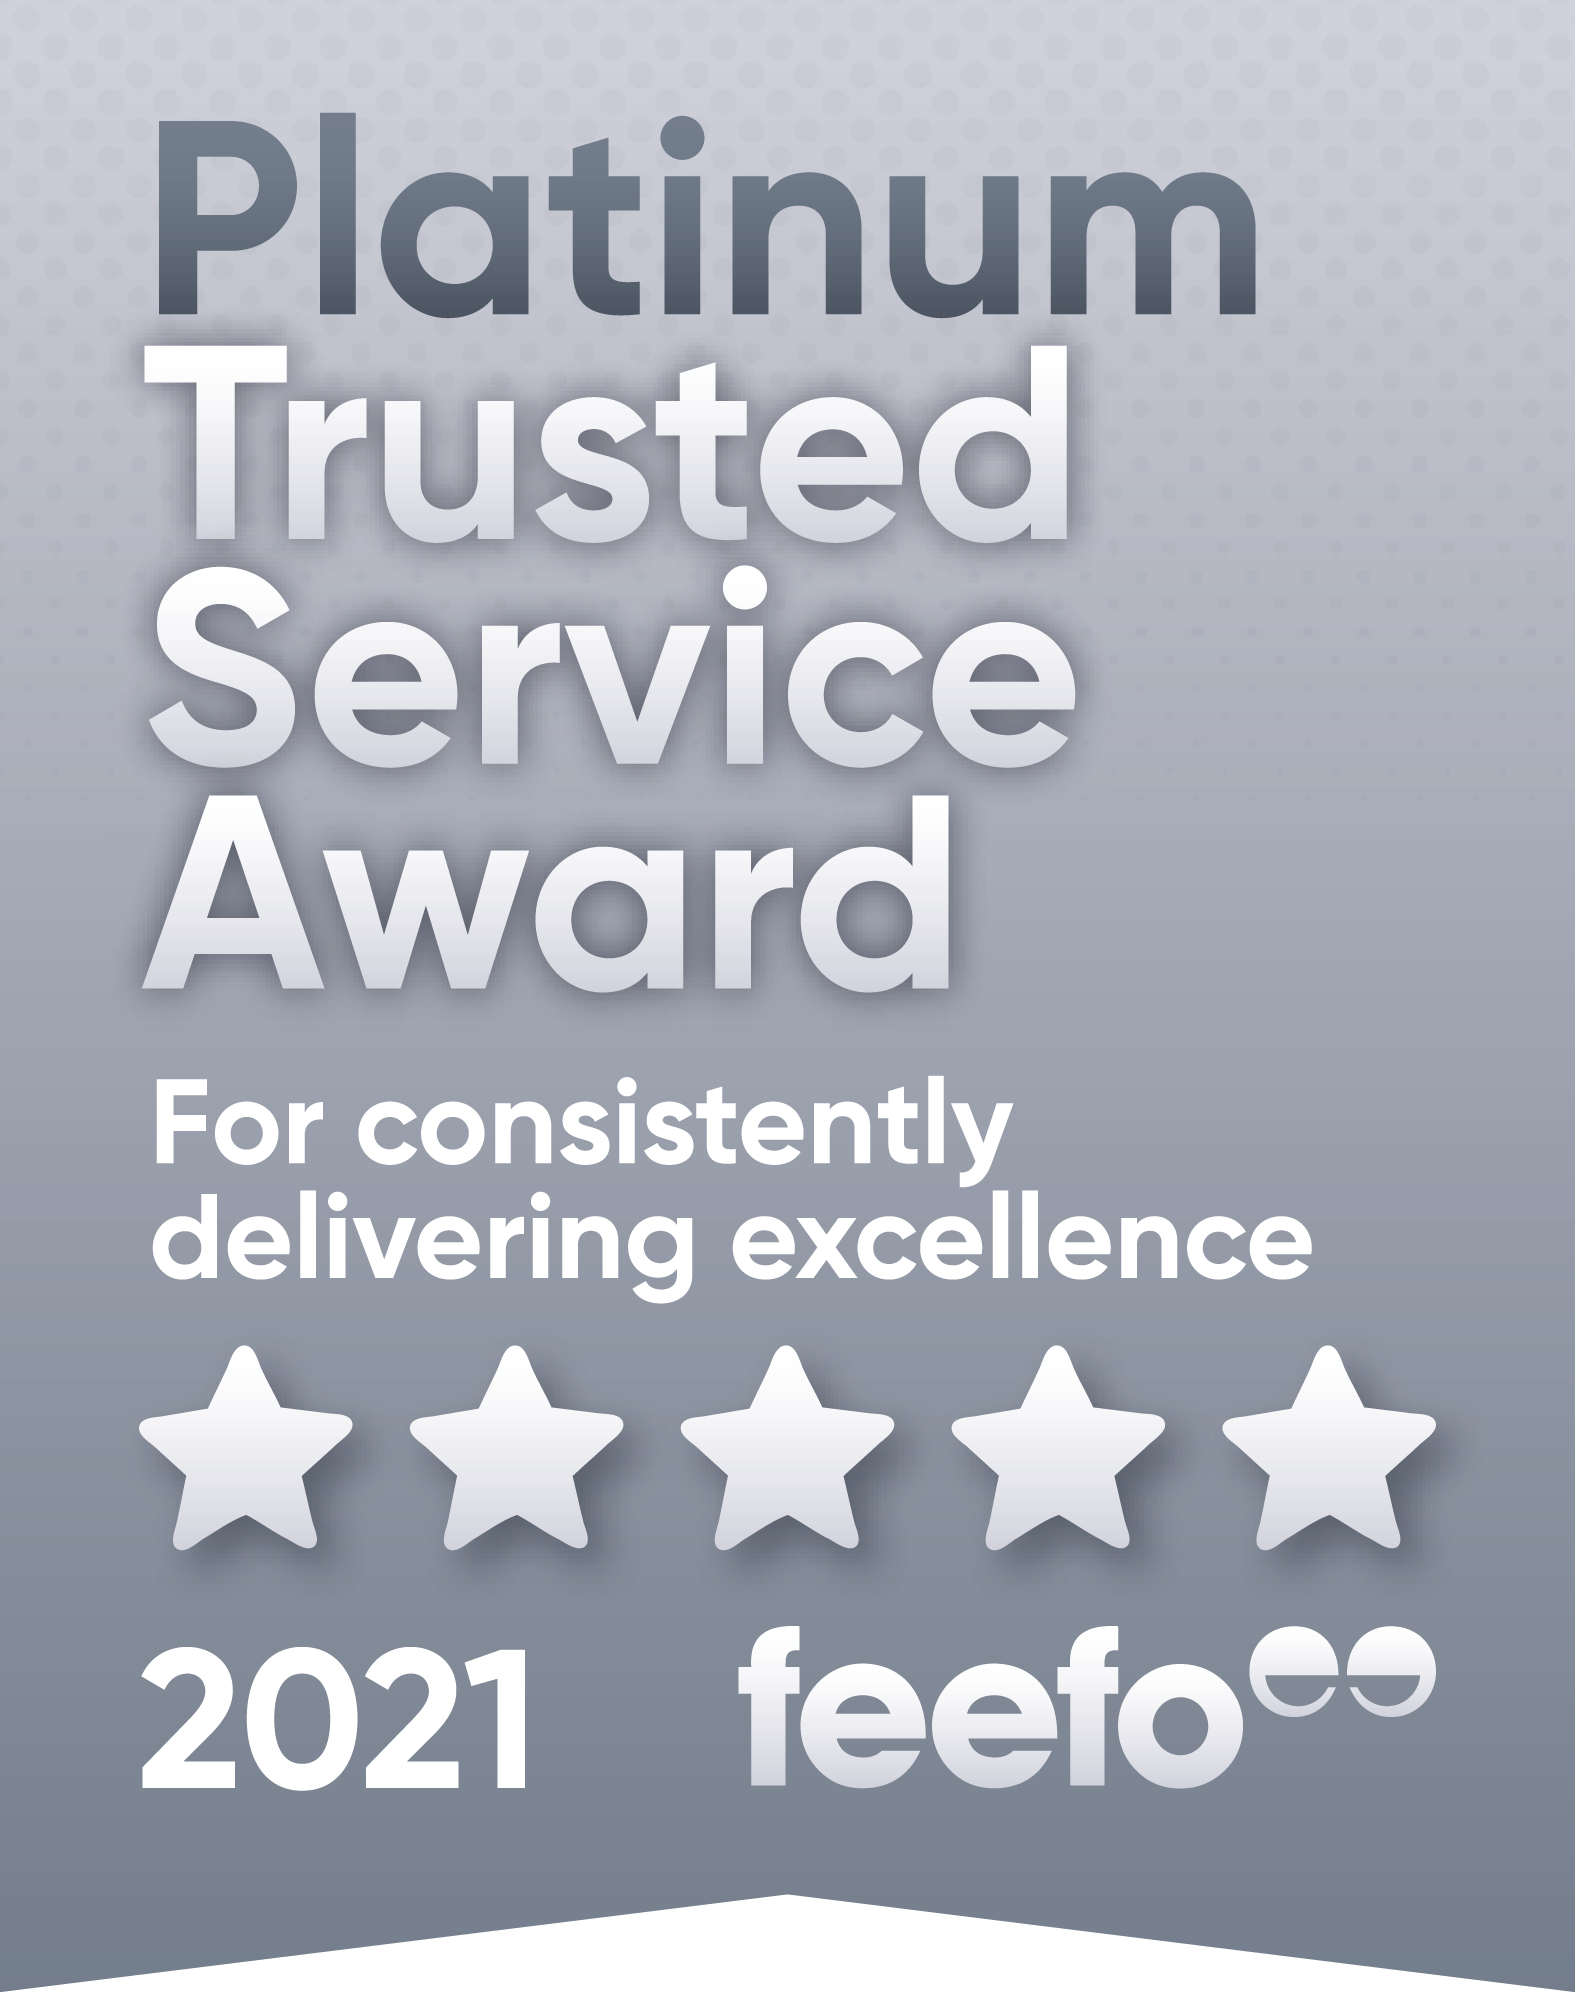 THERE'S GOOD SERVICE. THEN THERE'S TRUSTED SERVICE. HP GET PLATINUM!